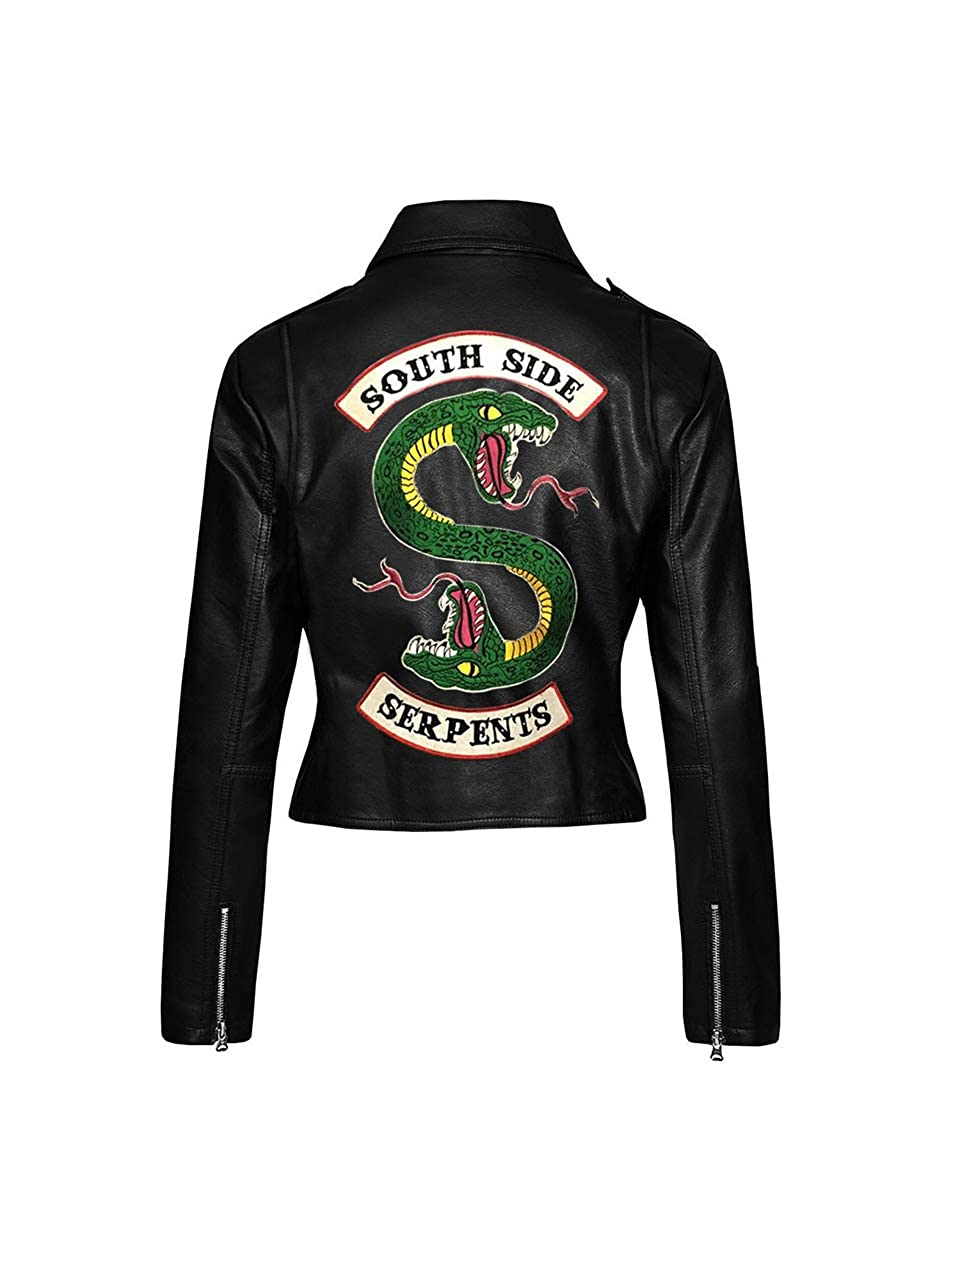 BNH Riverdale Southside Serpents Cole Sprouse Jughead Jones Jacket for Women